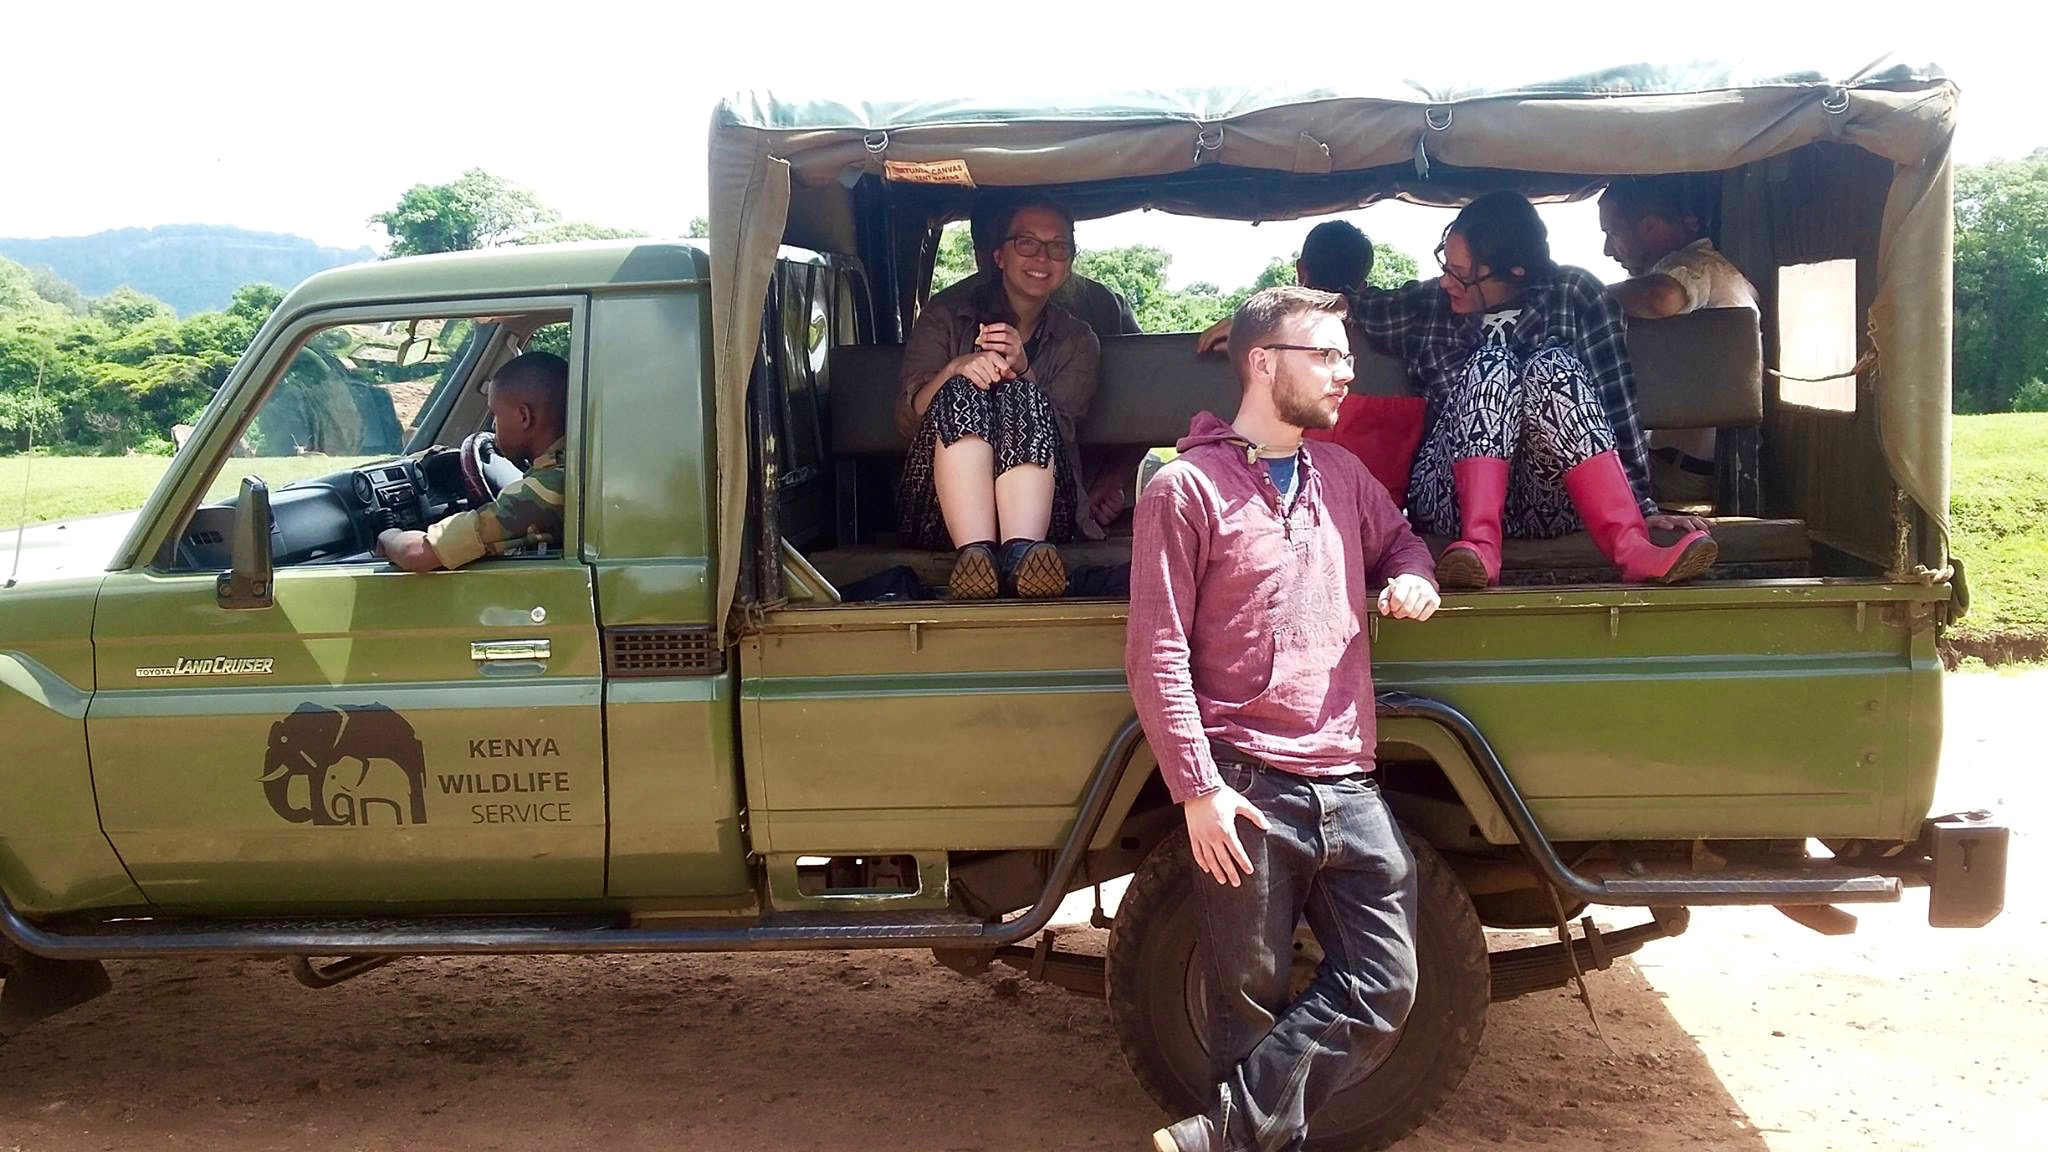 The team traveled in a Land Cruiser for the trip. The back was rigged with two rows of seats, each facing a different direction. Our drivers were also armed guards.